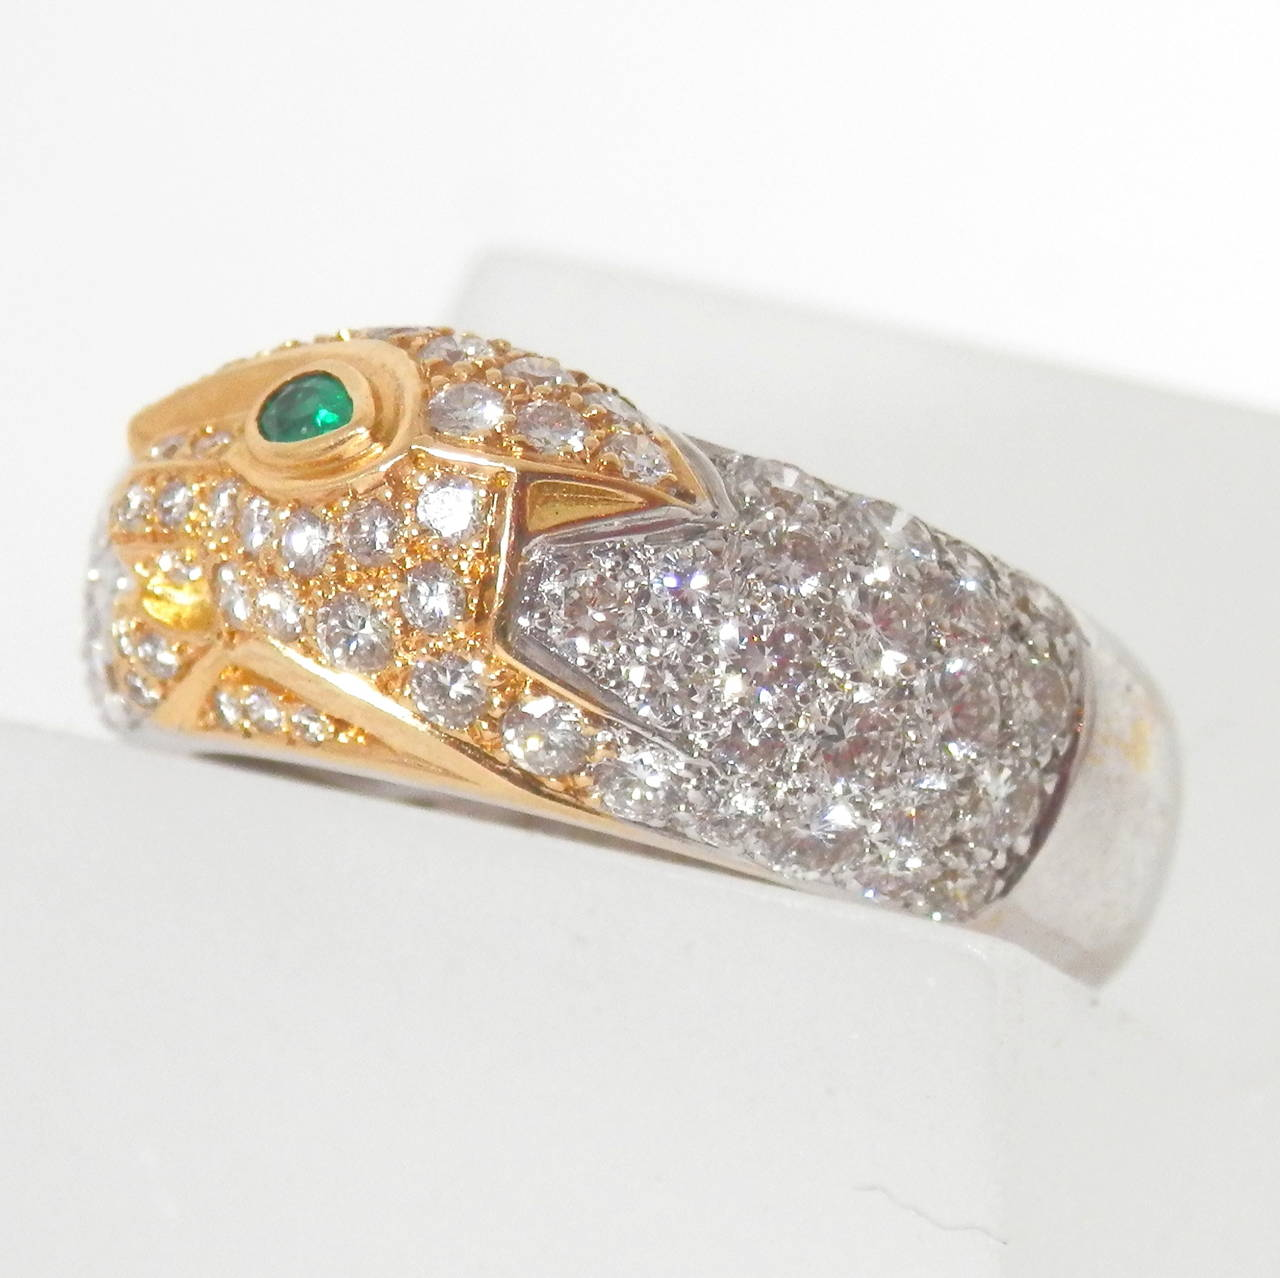 In 18K gold, an emerald eyed Panther in yellow gold is set off with a white gold diamond surround.  The ring is a size 6 1.2 and can be sized.  It is signed Cartier, numbered EO8573 and is dated 1996. The shank varies from 6.0 to 8.4 mm  It